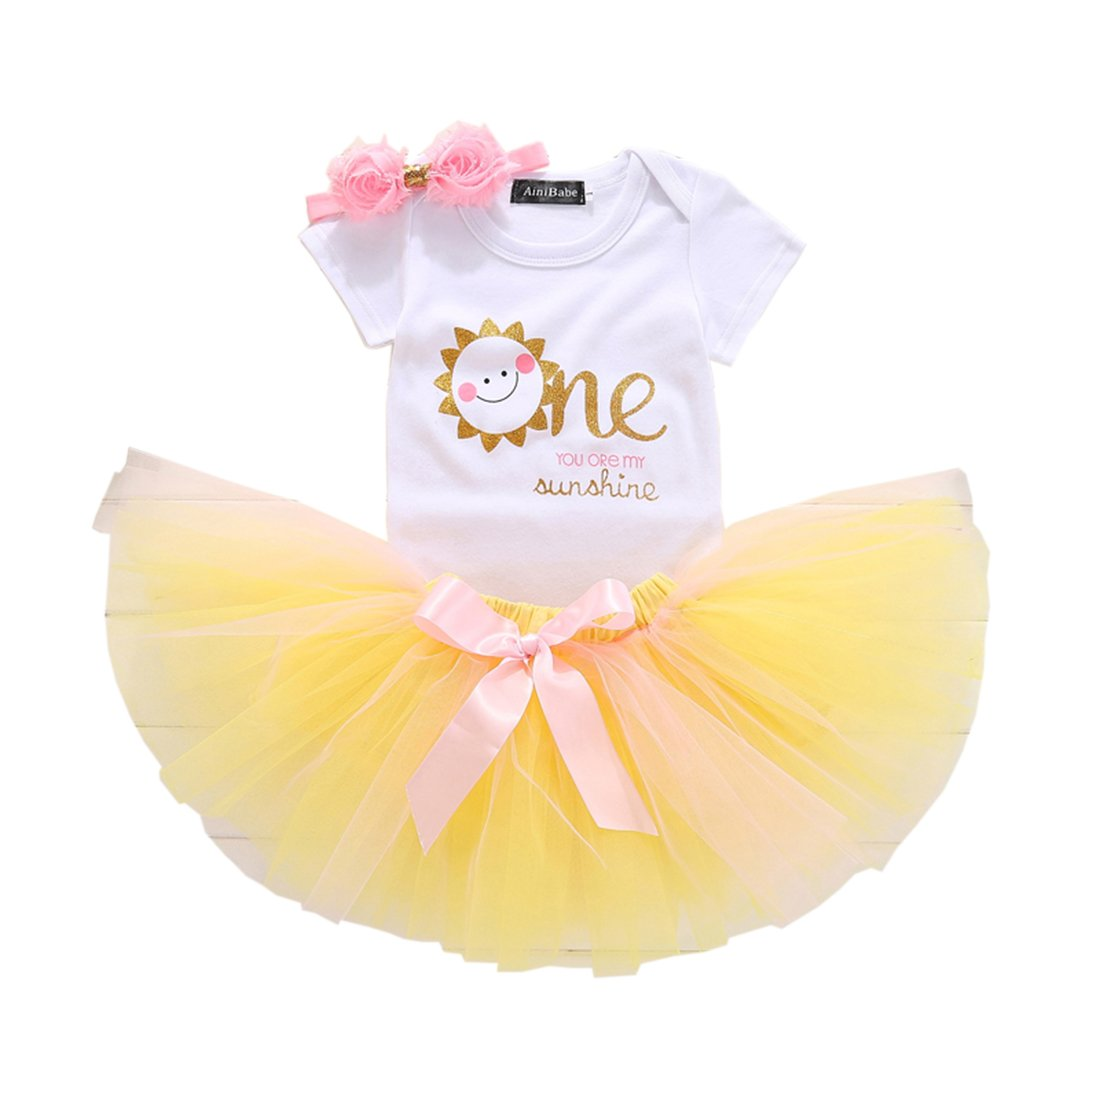 Baby Girl's 1ST Birthday Set Outfits with Smile Sun Romper + Bow Tutu Lace +3D Flower Headband